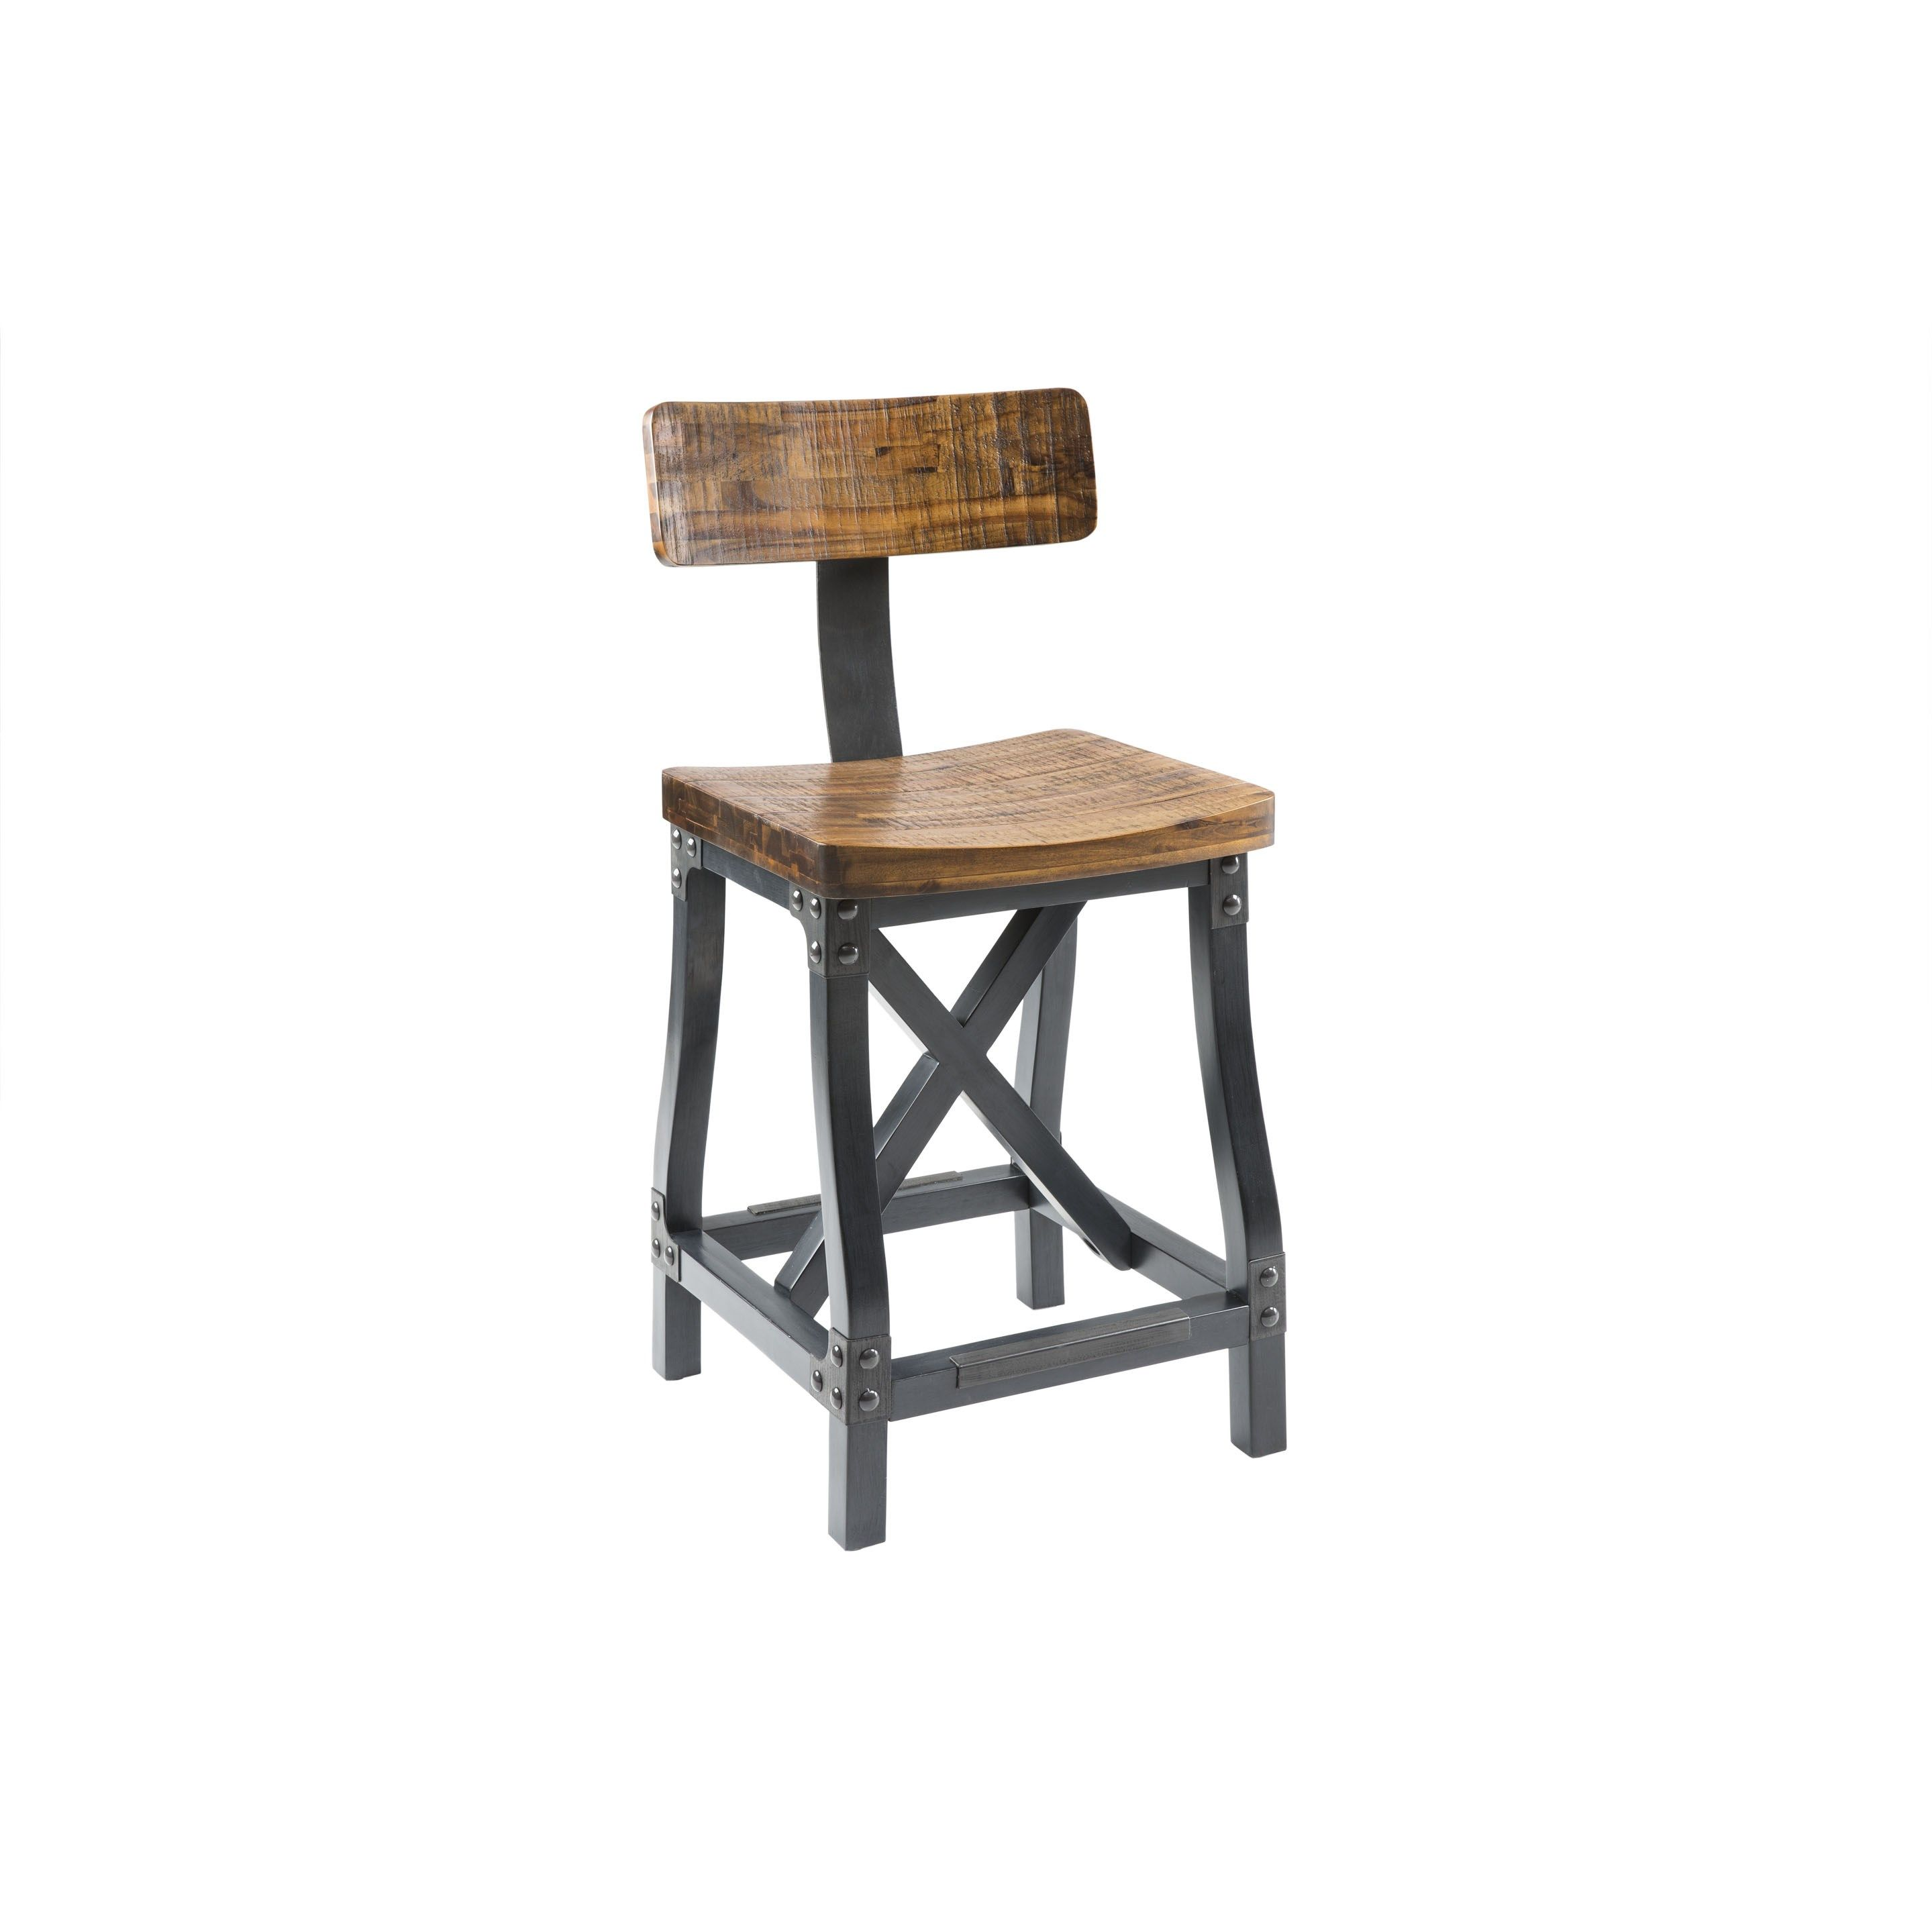 counter with swivel leather stools stylish chairs countertop red canada trendy arms on island kitchen bar stool rustic uncategorized tall wood within target height